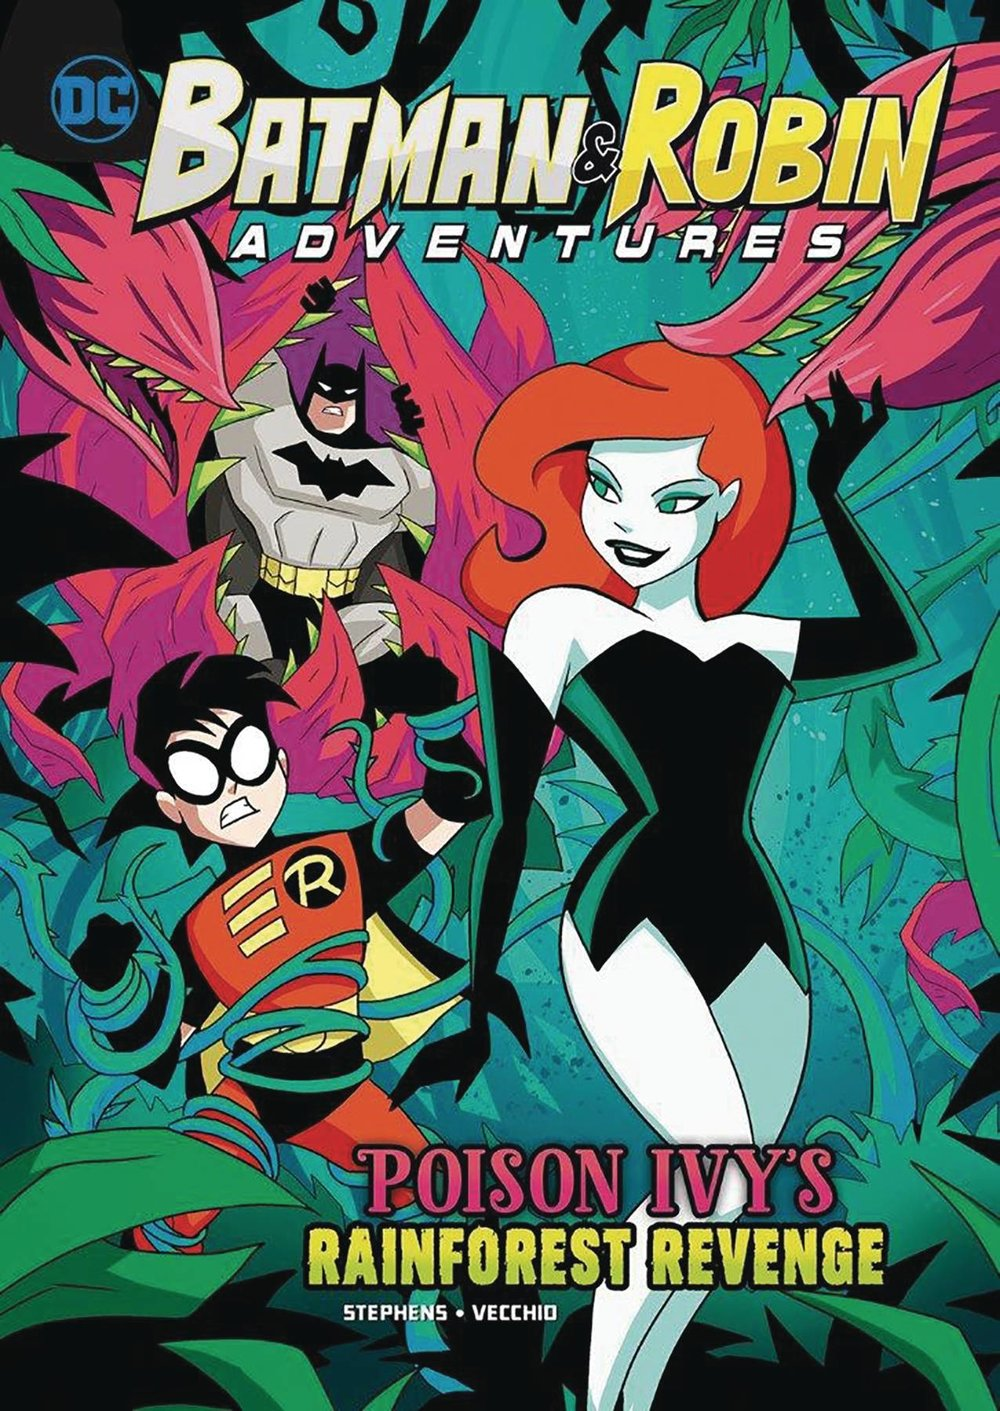 BATMAN & ROBIN ADV YR TP 8 POISON IVY` RAINFOREST REVENGE.jpg